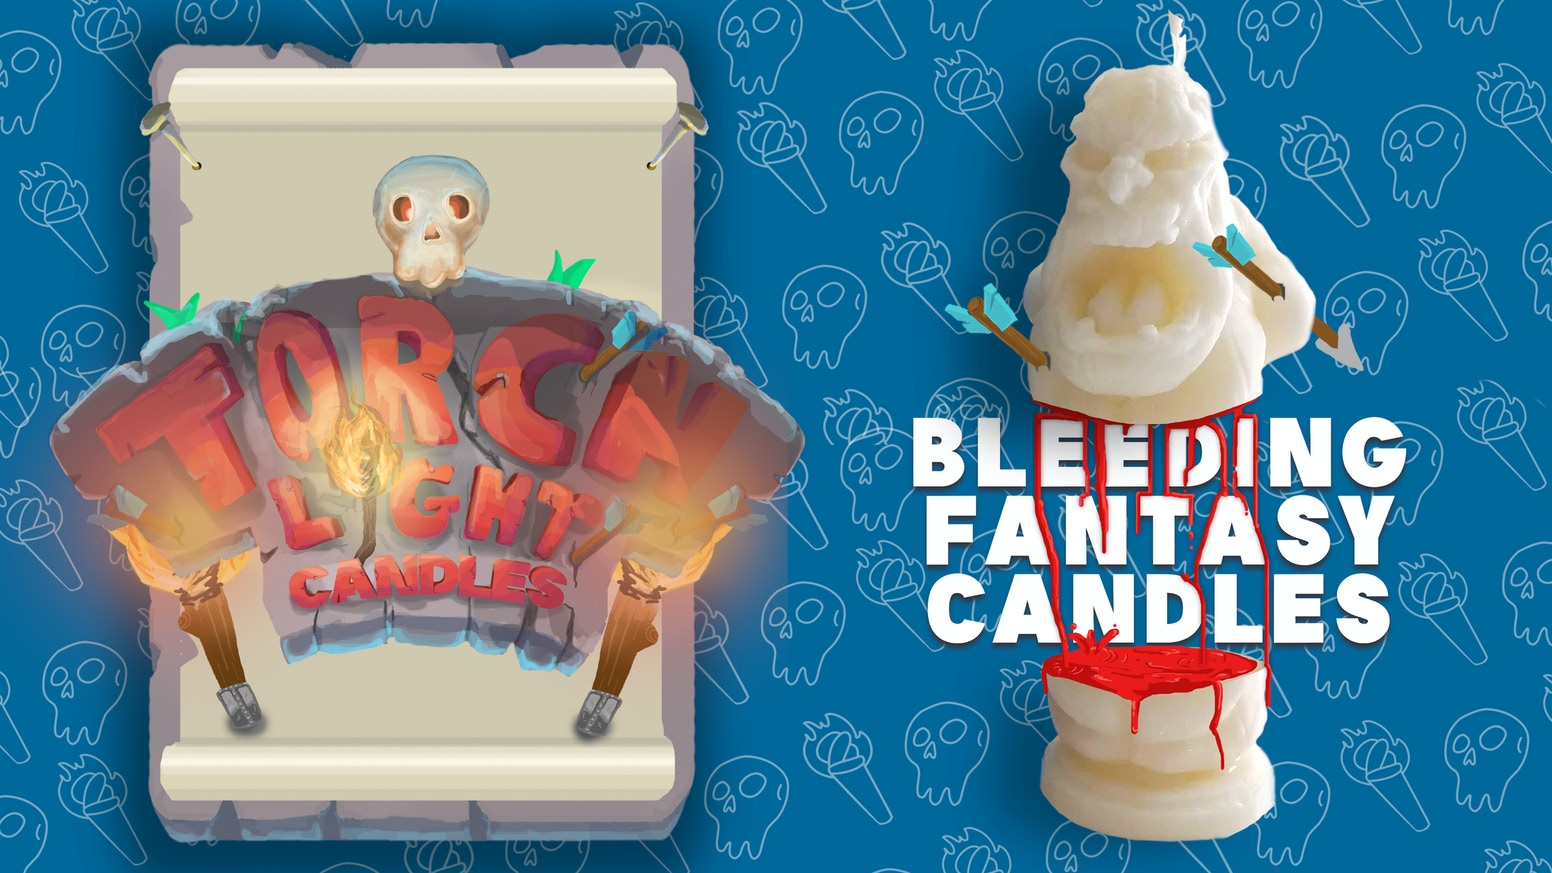 Escape On Your Own Epic Fantasy Adventure With These High Definition Character Candles That Bleed When They Burn